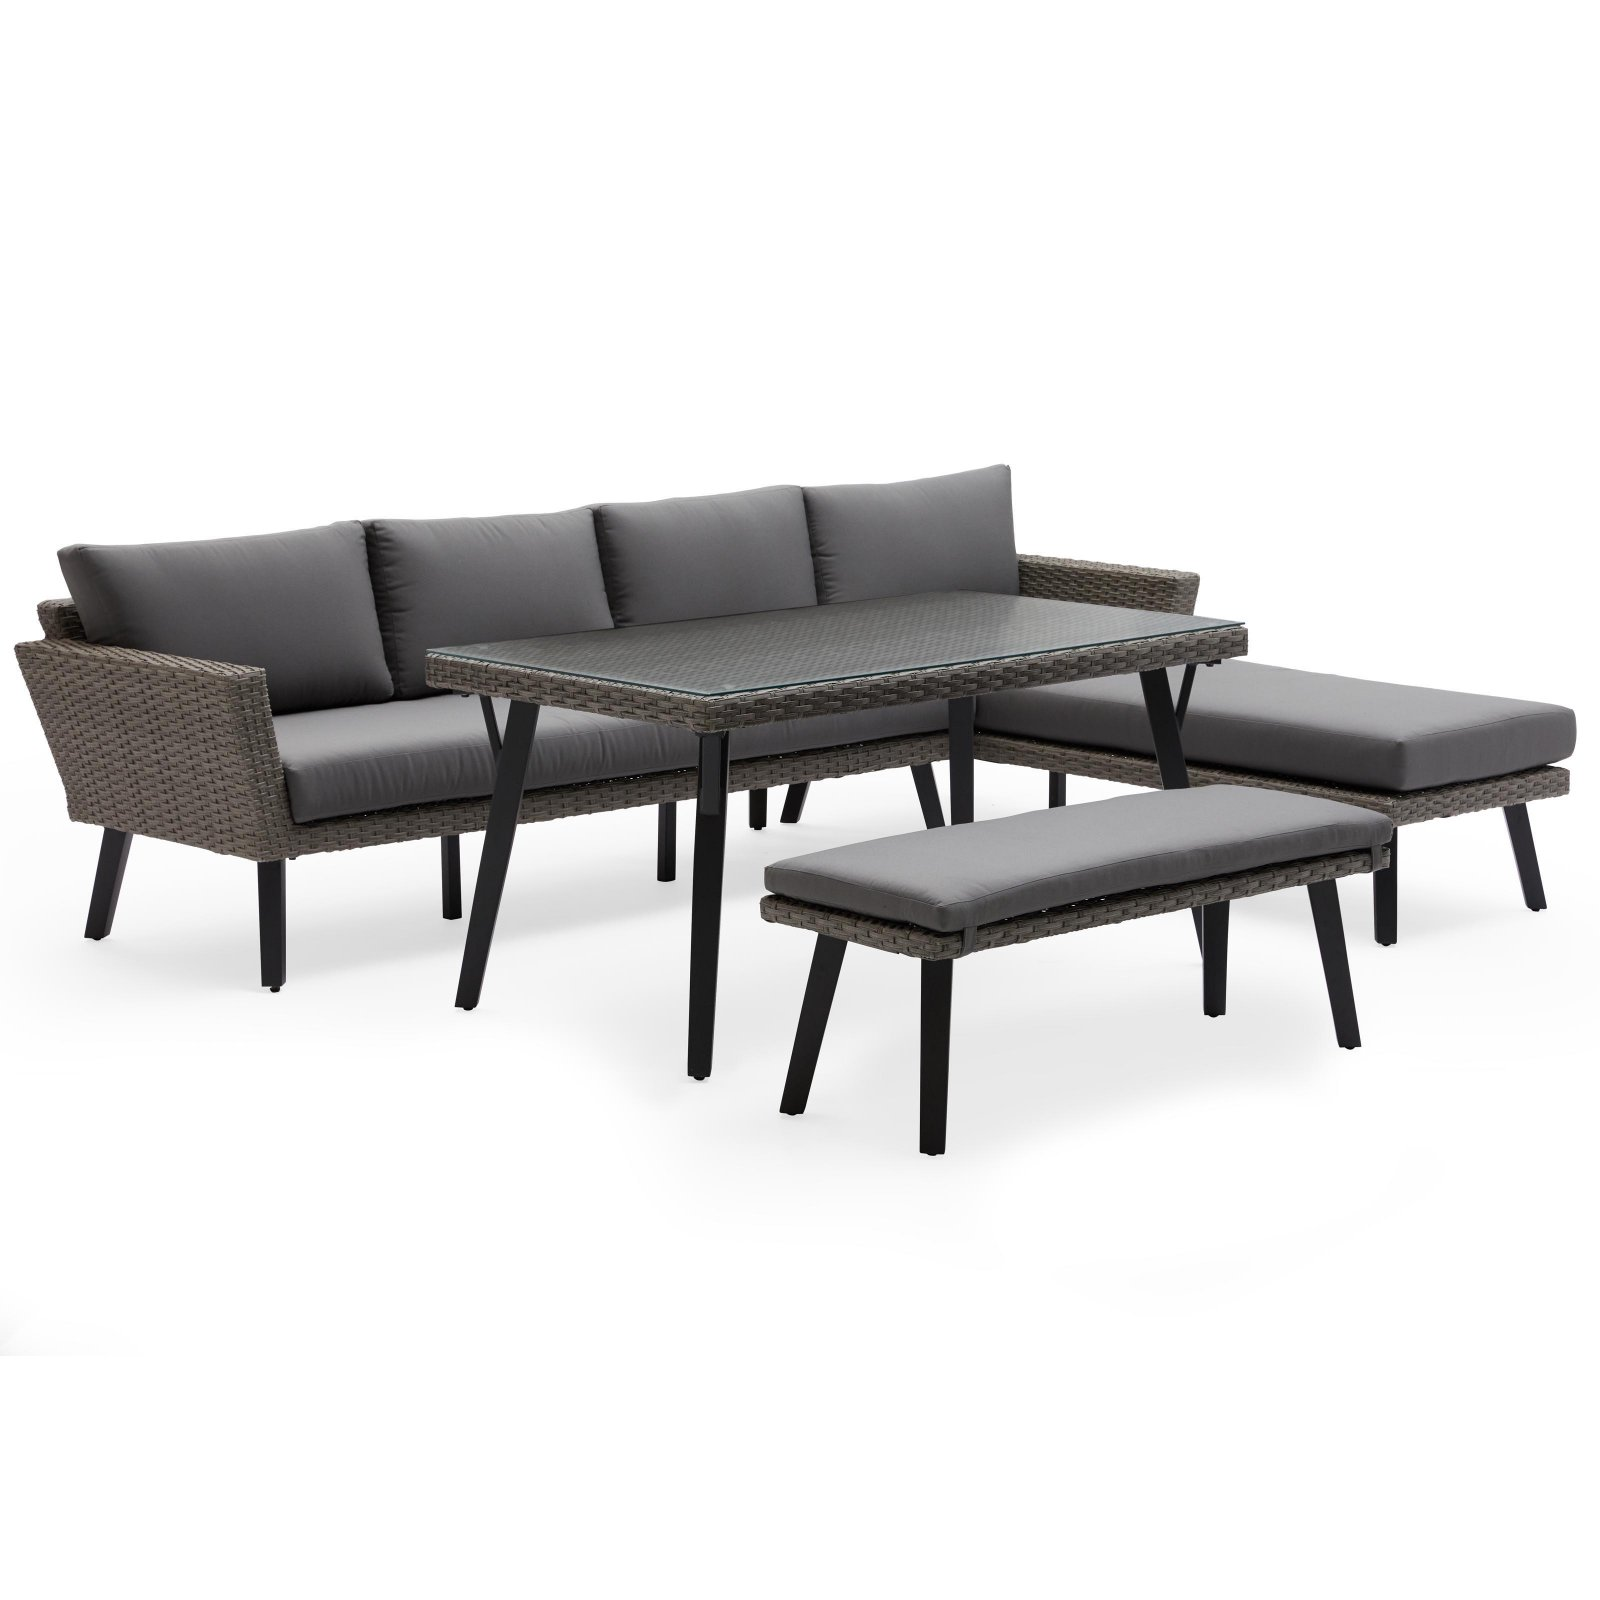 MoDRN Scandinavian Lina Outdoor Patio Casual Dining Sectional Set